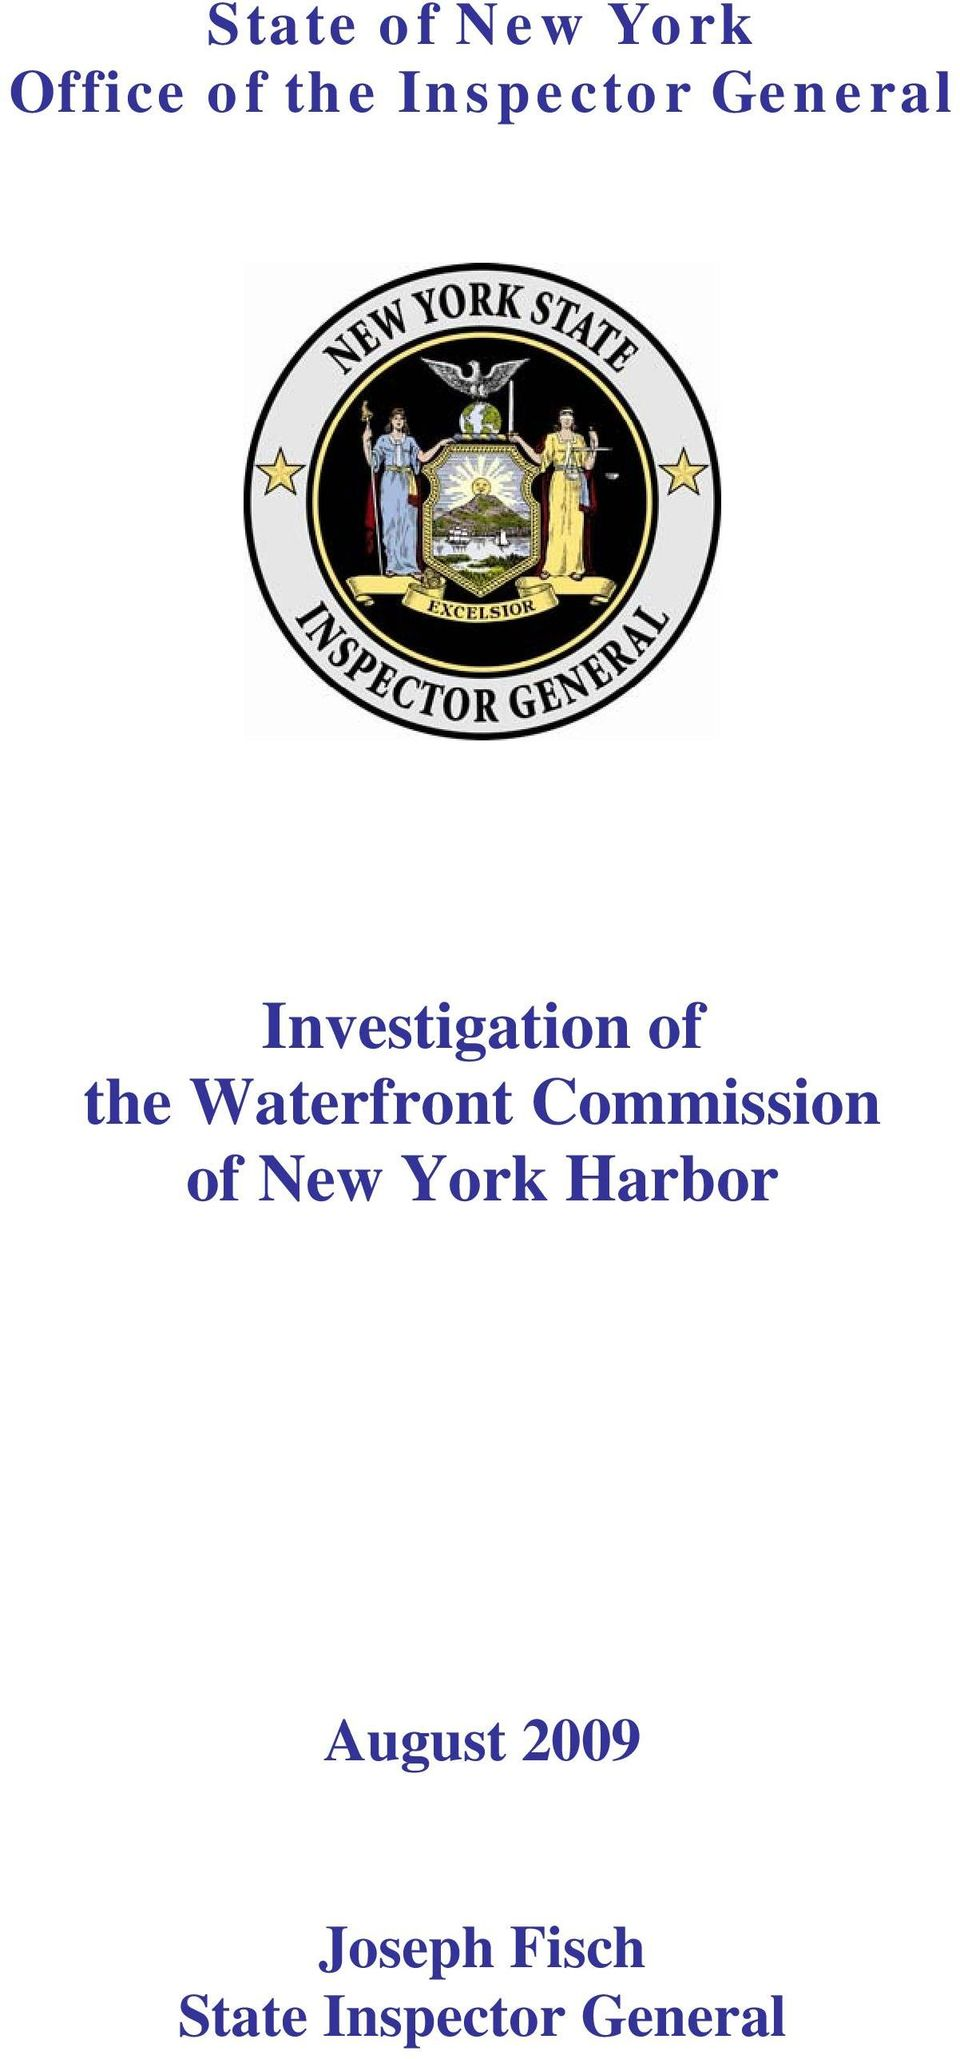 Waterfront Commission of New York